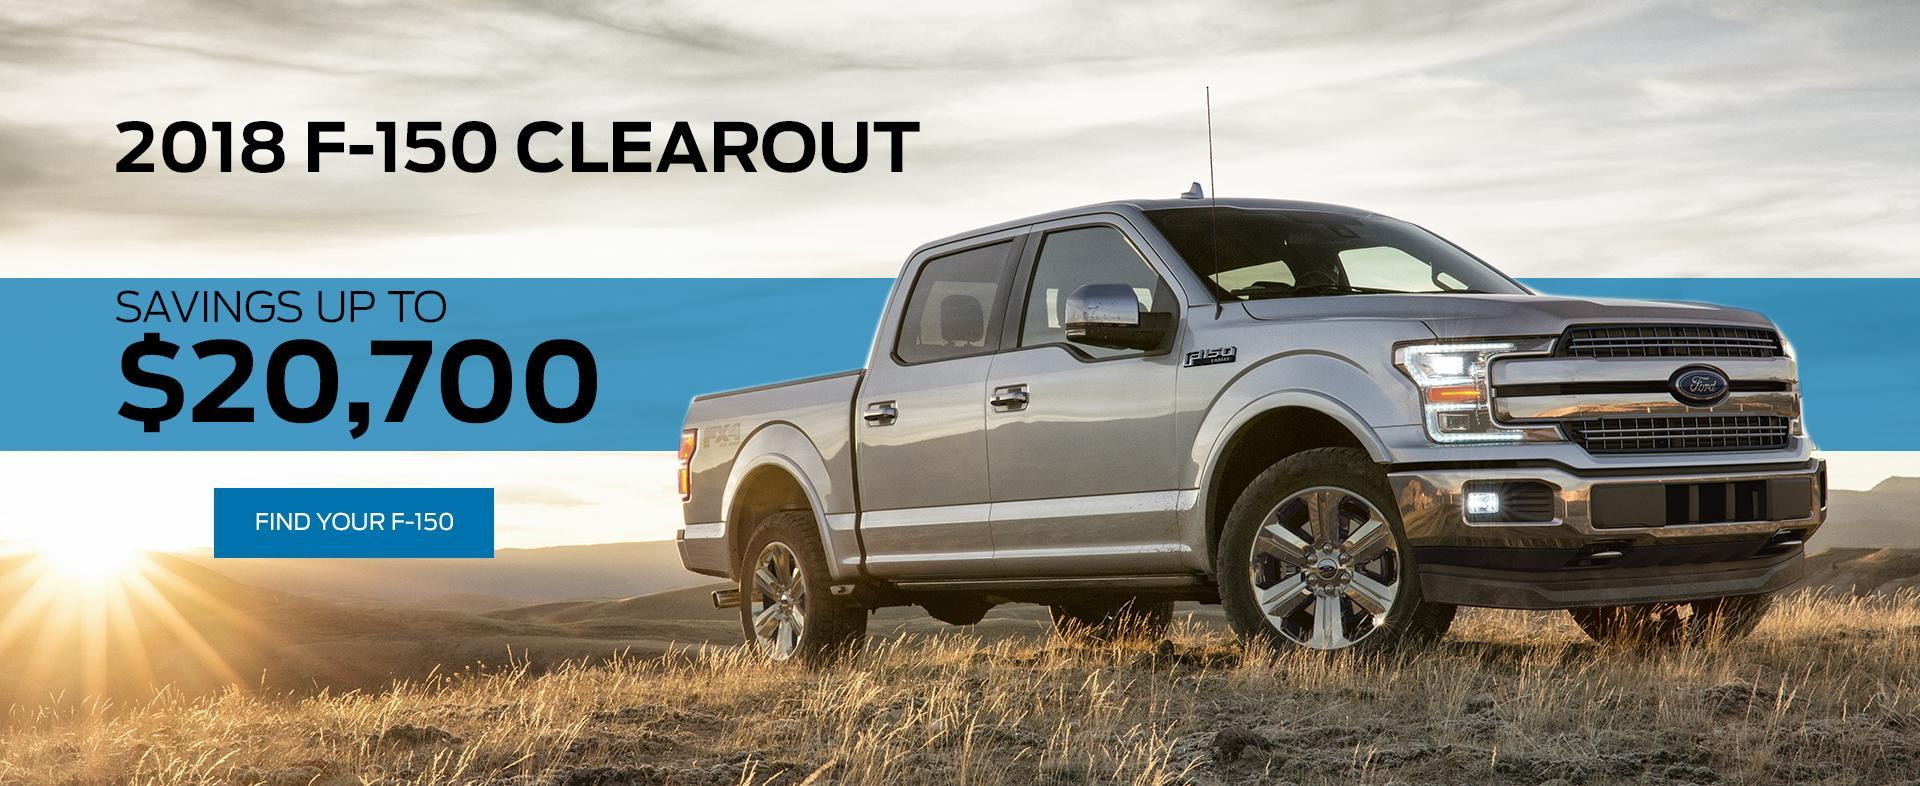 2018 Ford F-150 Clearout